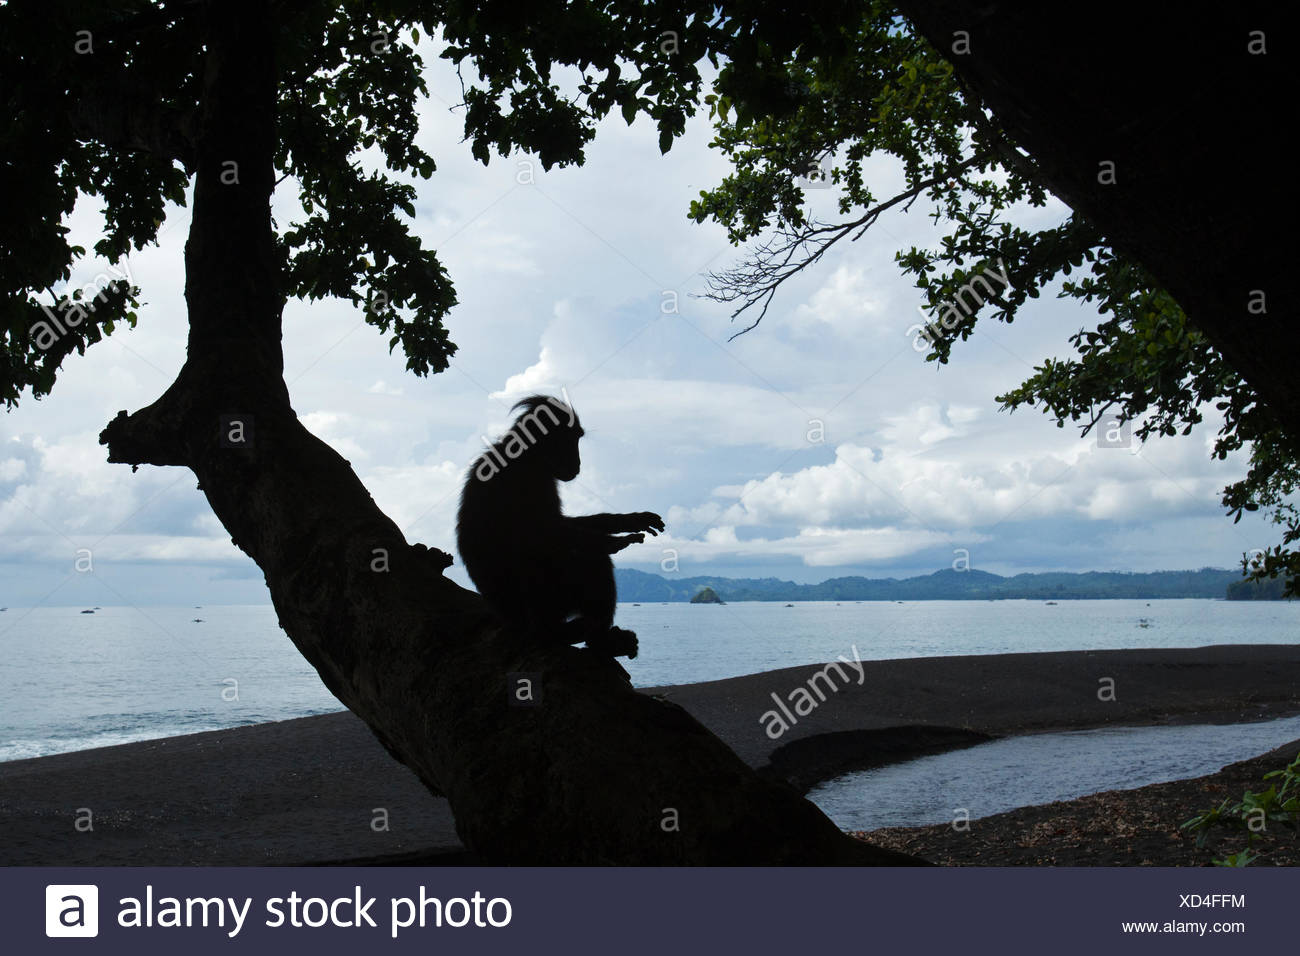 Celebes / Black crested macaque (Macaca nigra) silhouette of juvenile sitting in a tree at coast, Tangkoko National Park, Sulawesi, Indonesia. - Stock Image